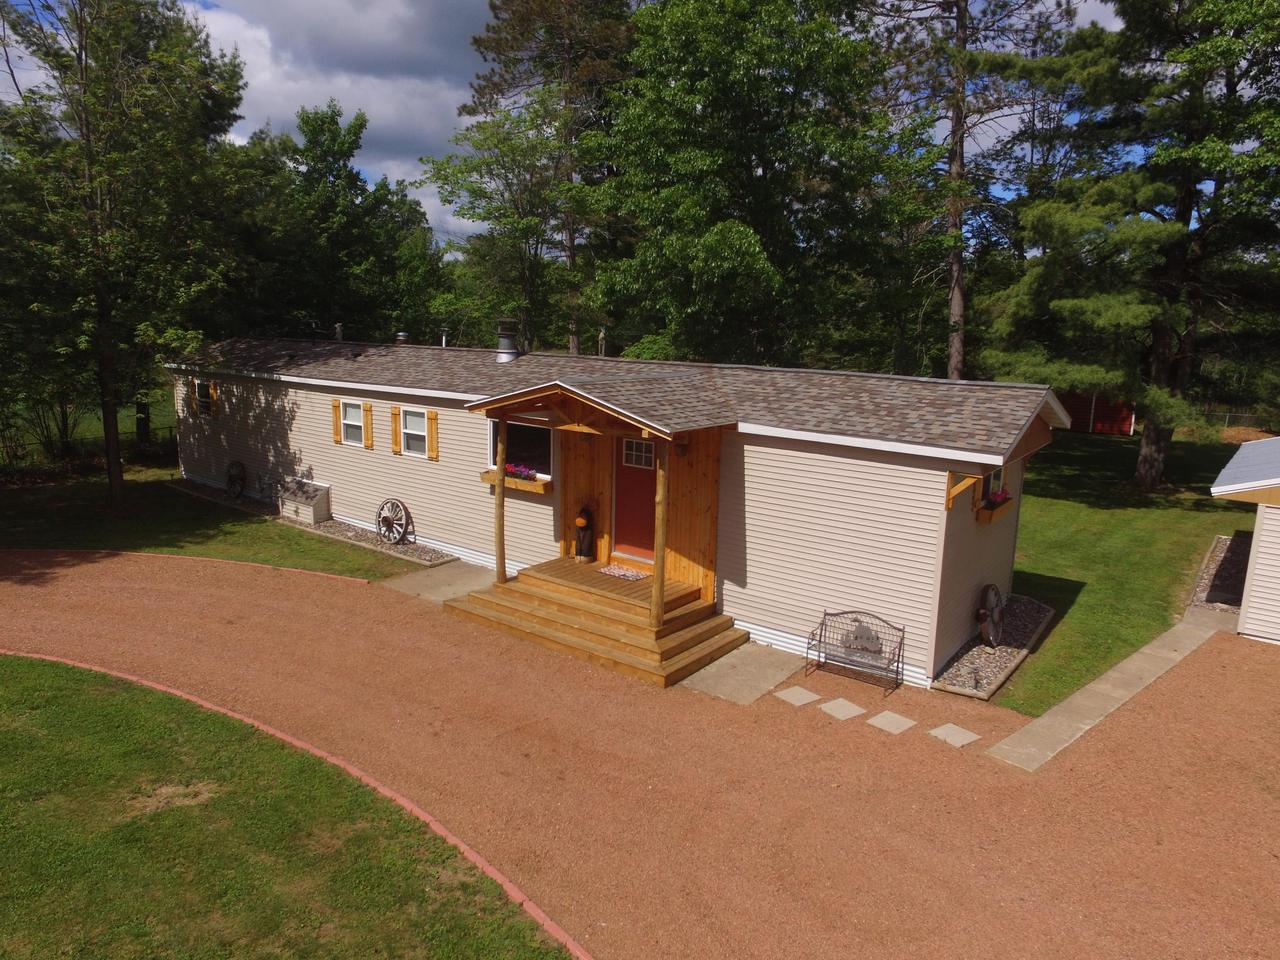 Come check out your Northern Wisconsin retreat!  completely remodeled in the last 3 years, Sitting on a half acre lot with a park like setting it just gives you those relaxation feels.  It's got 3 bedrooms and 2 full bathrooms, storage shed and a 2.5 car garage.  You've got to check it out, schedule your private showing today!